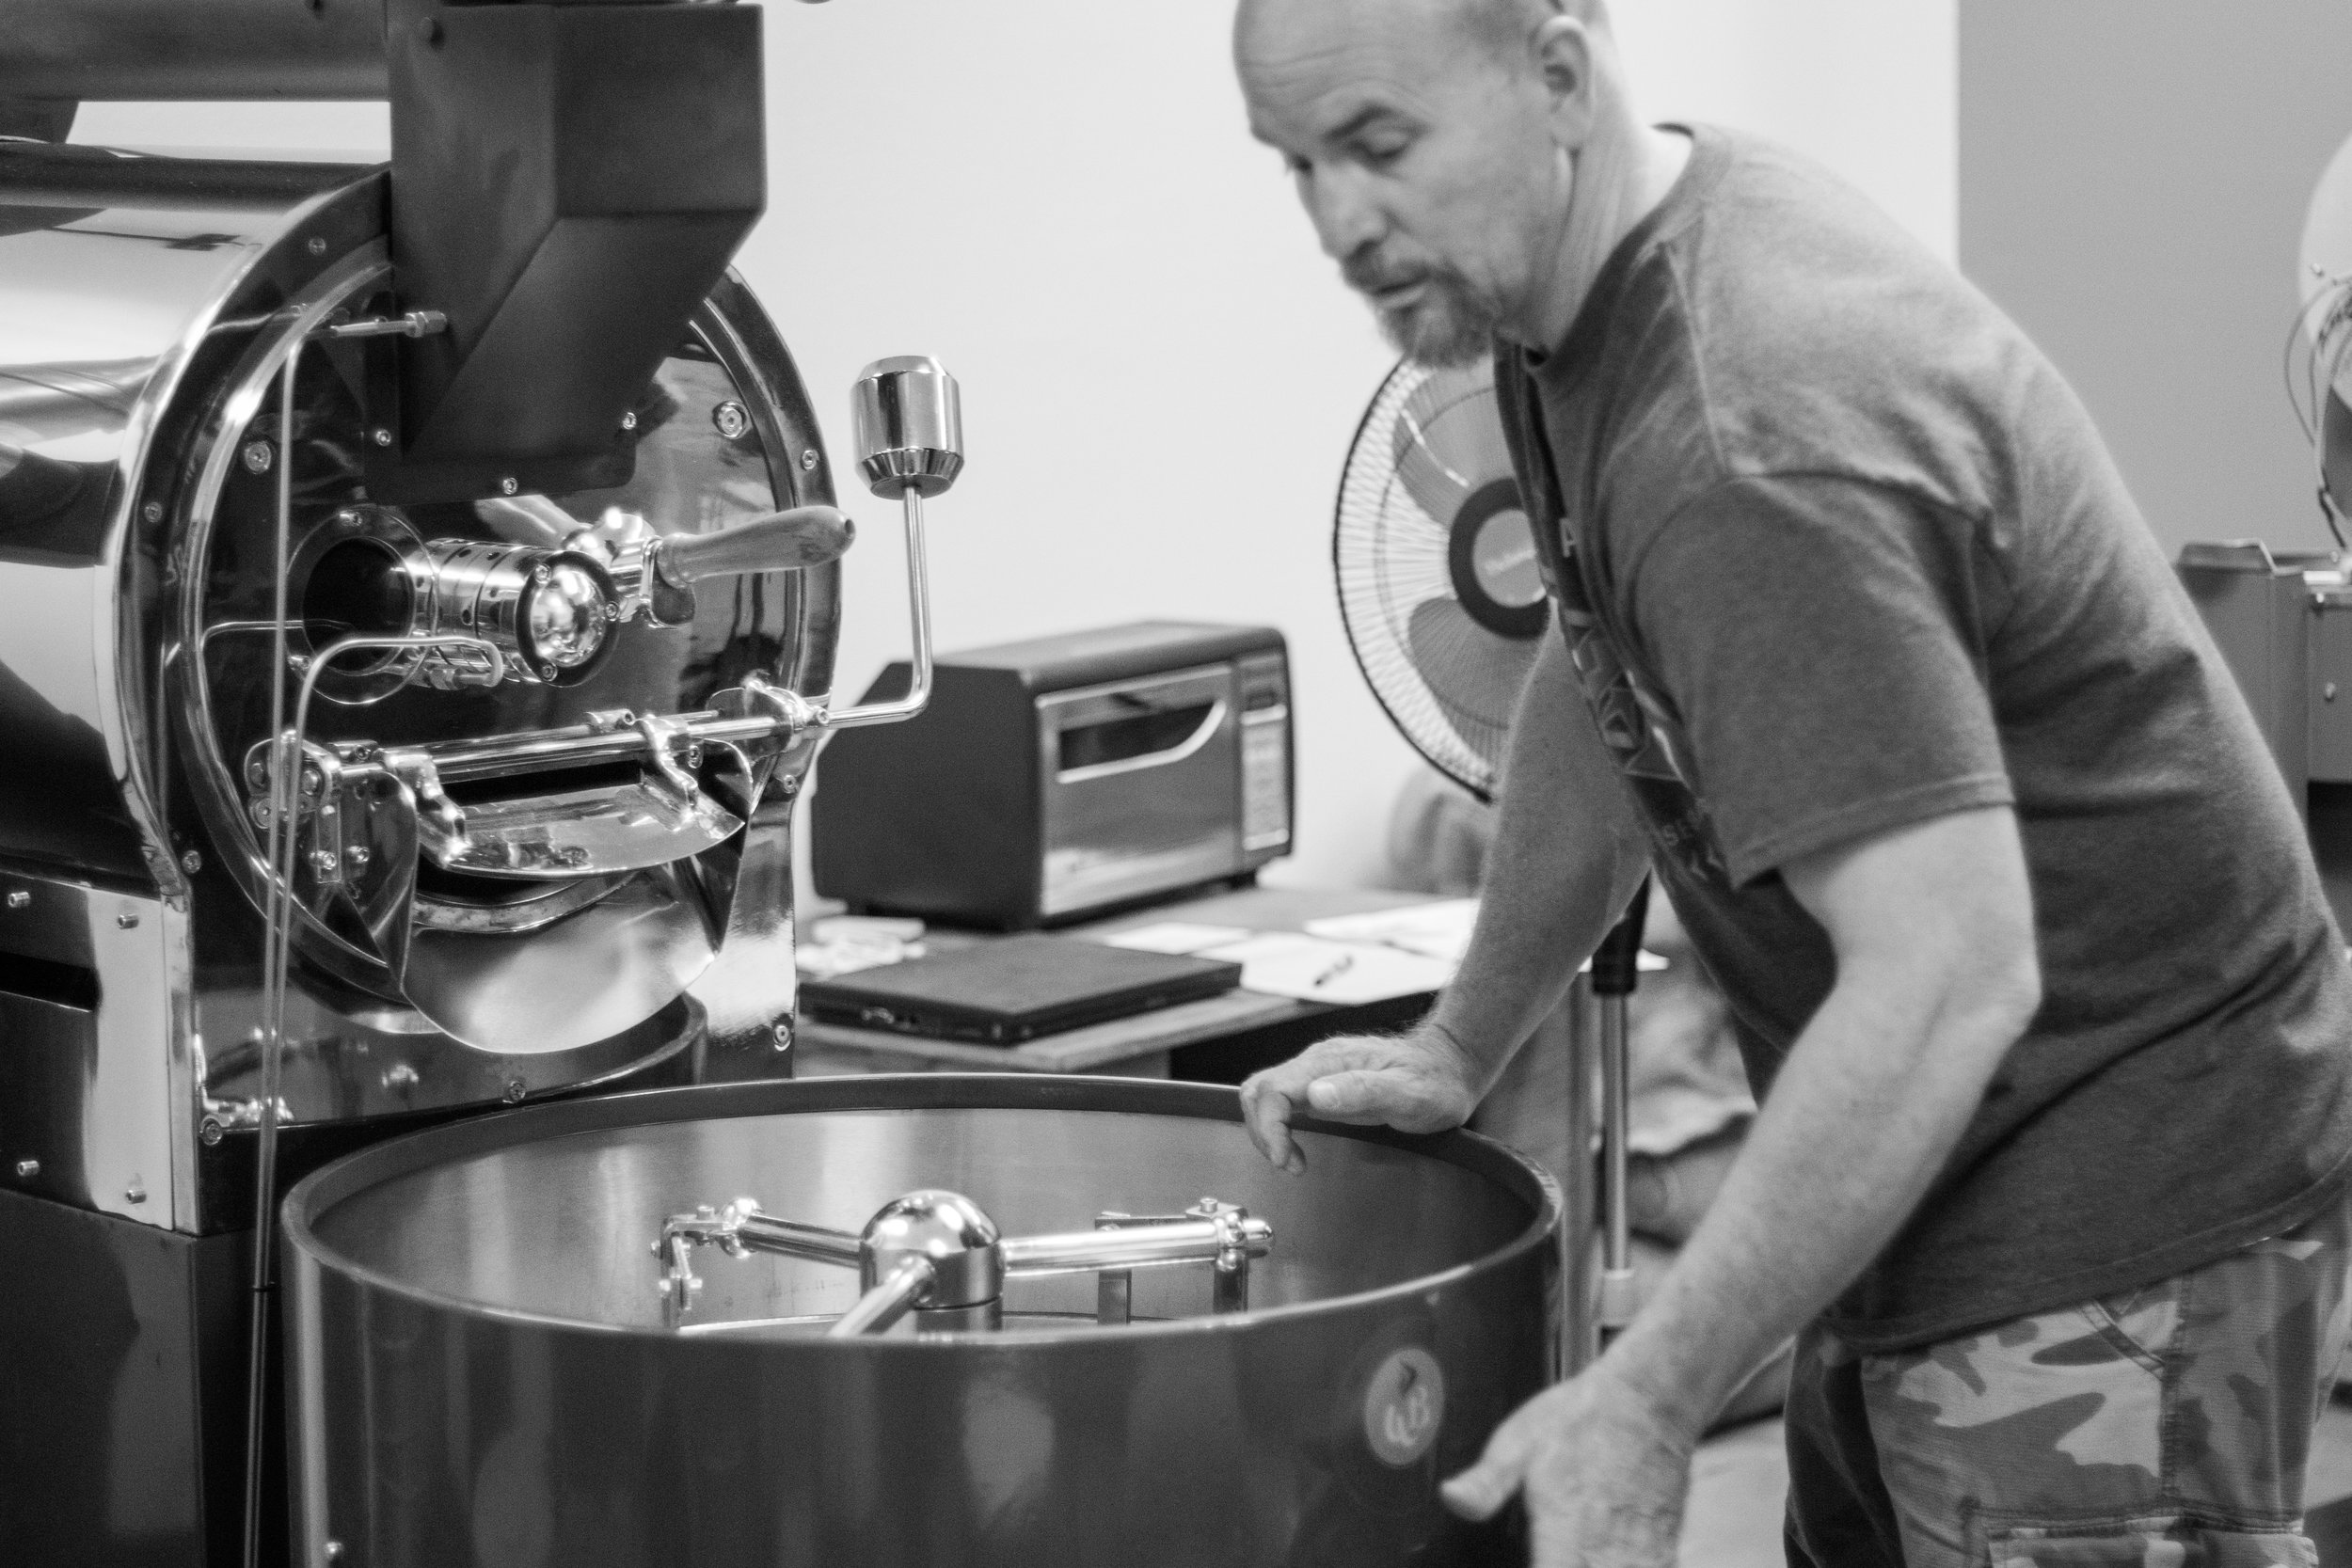 Fresh Roasted - Each batch is roasted with particular attention to the unique characteristics of the bean while ensuring consistency in the profile of each roast.